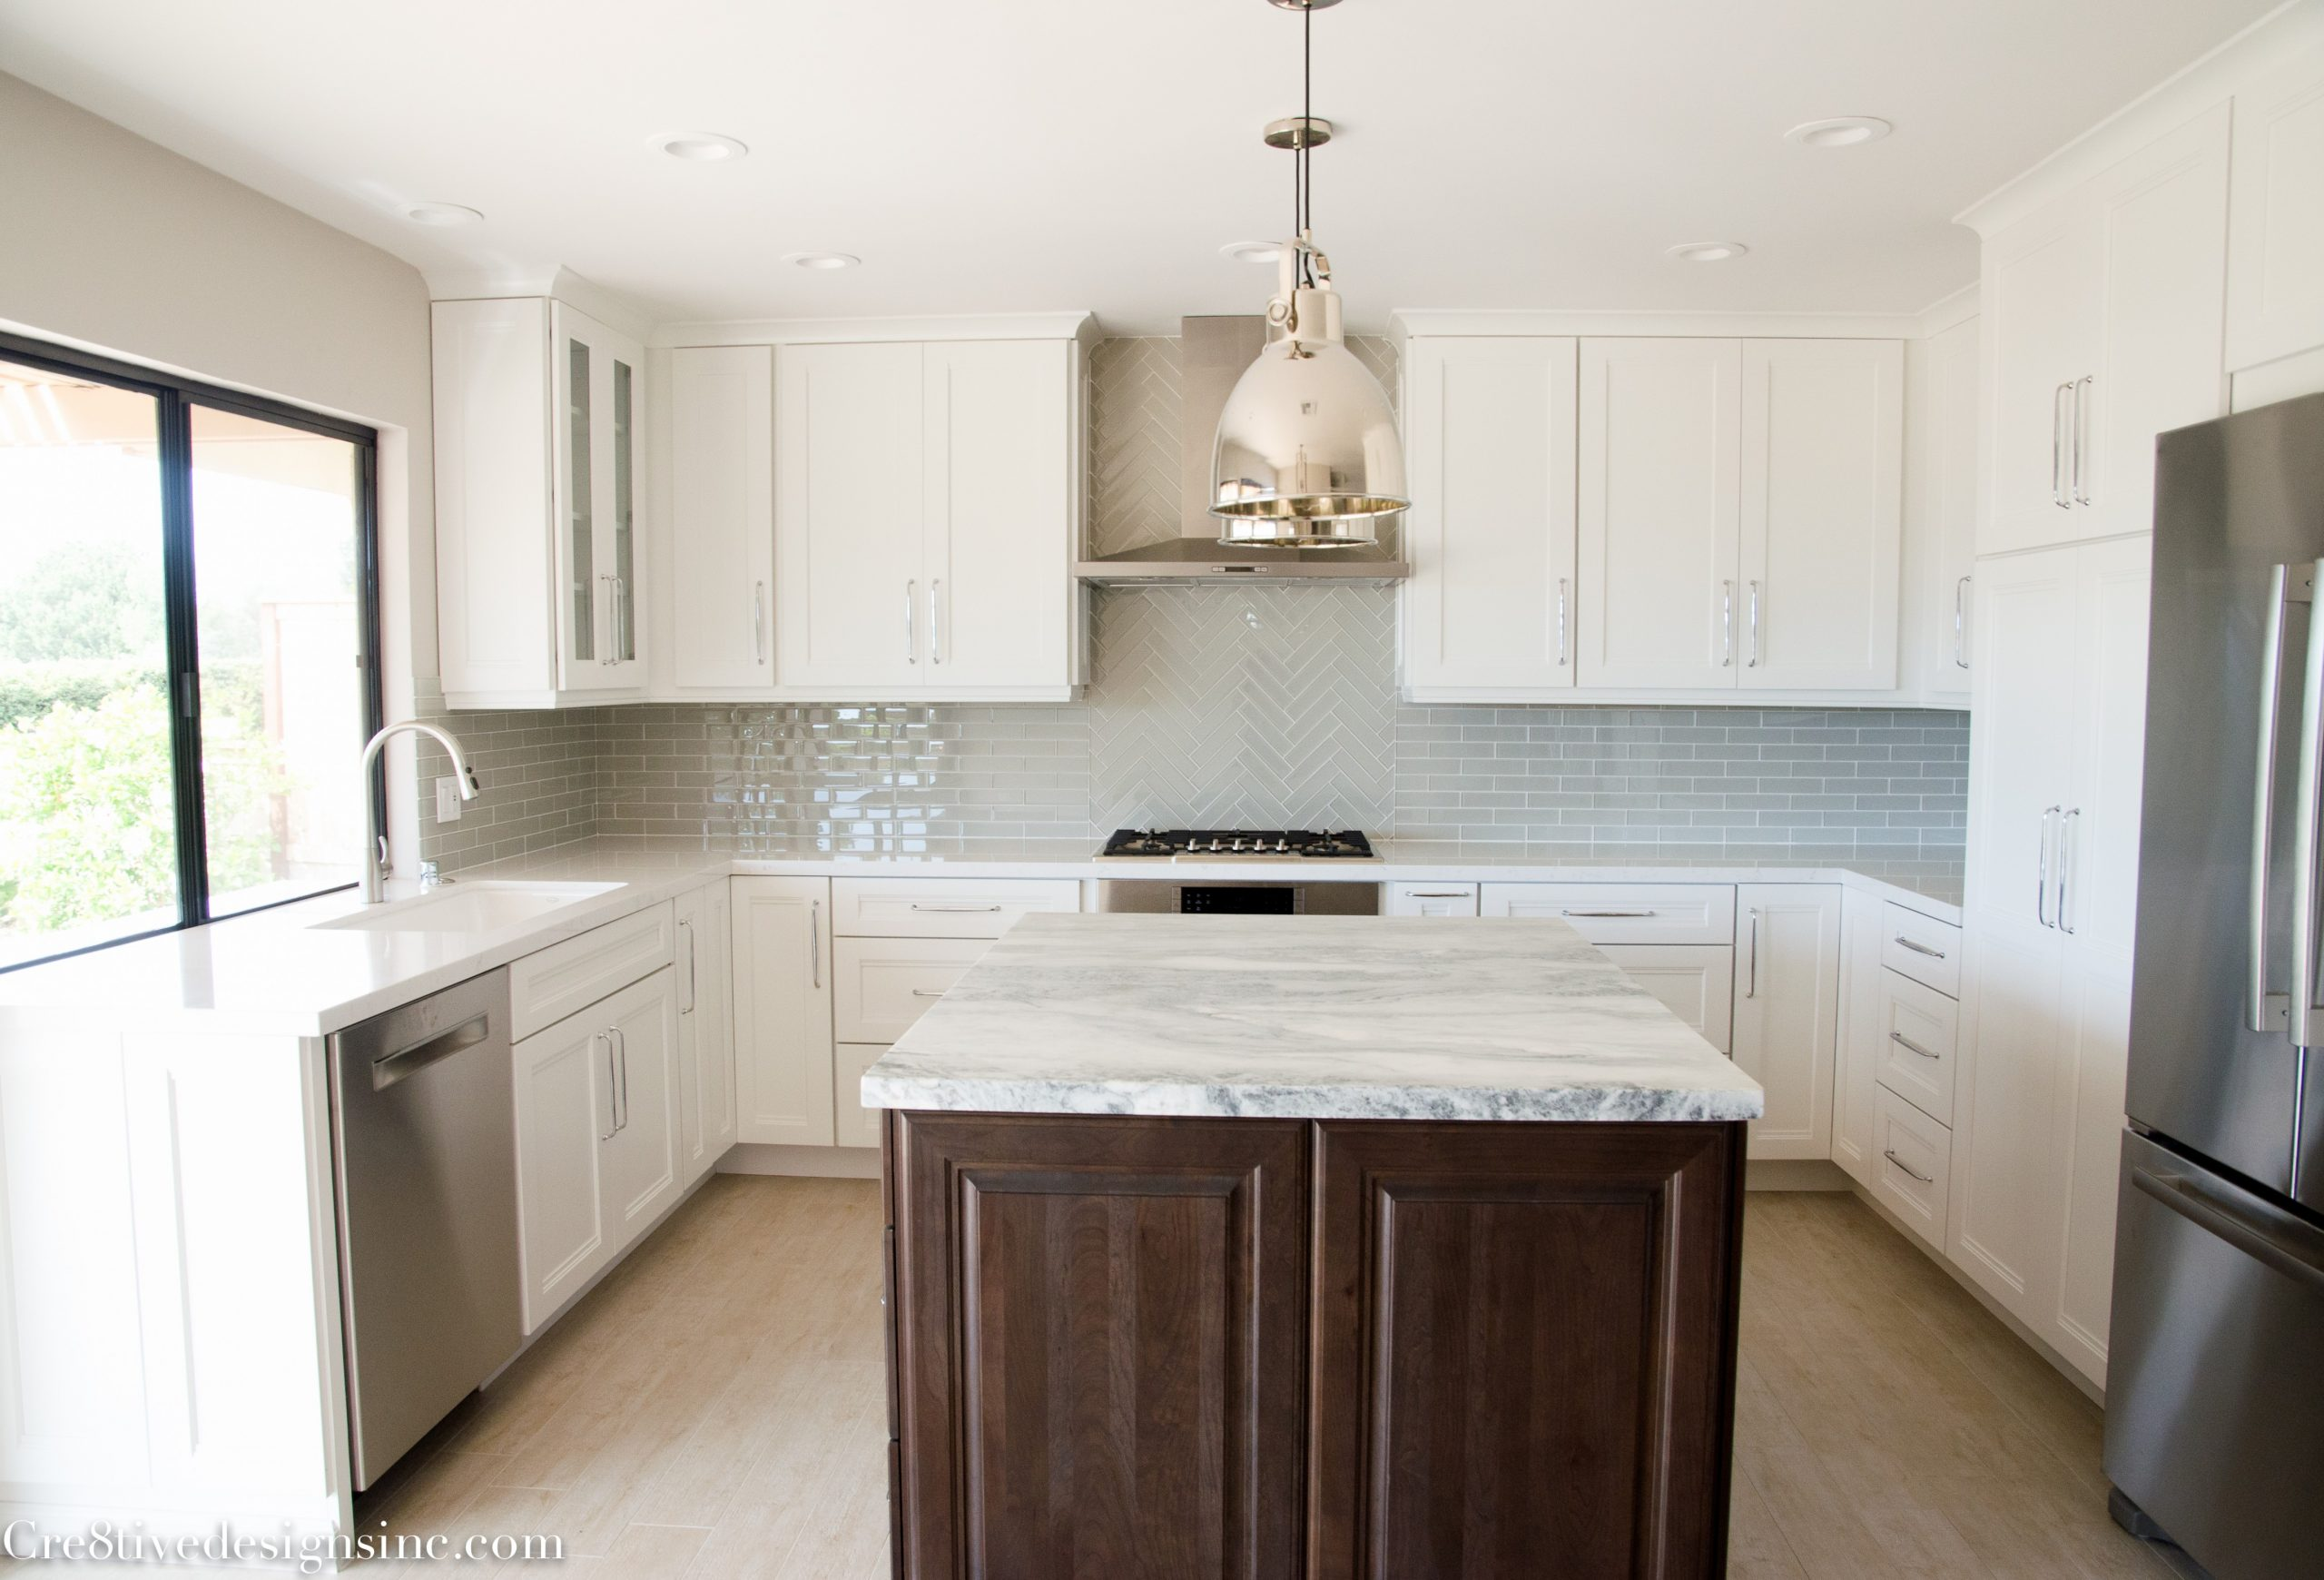 Kitchen remodel using Lowes Cabinets - Cre11tive Designs Inc